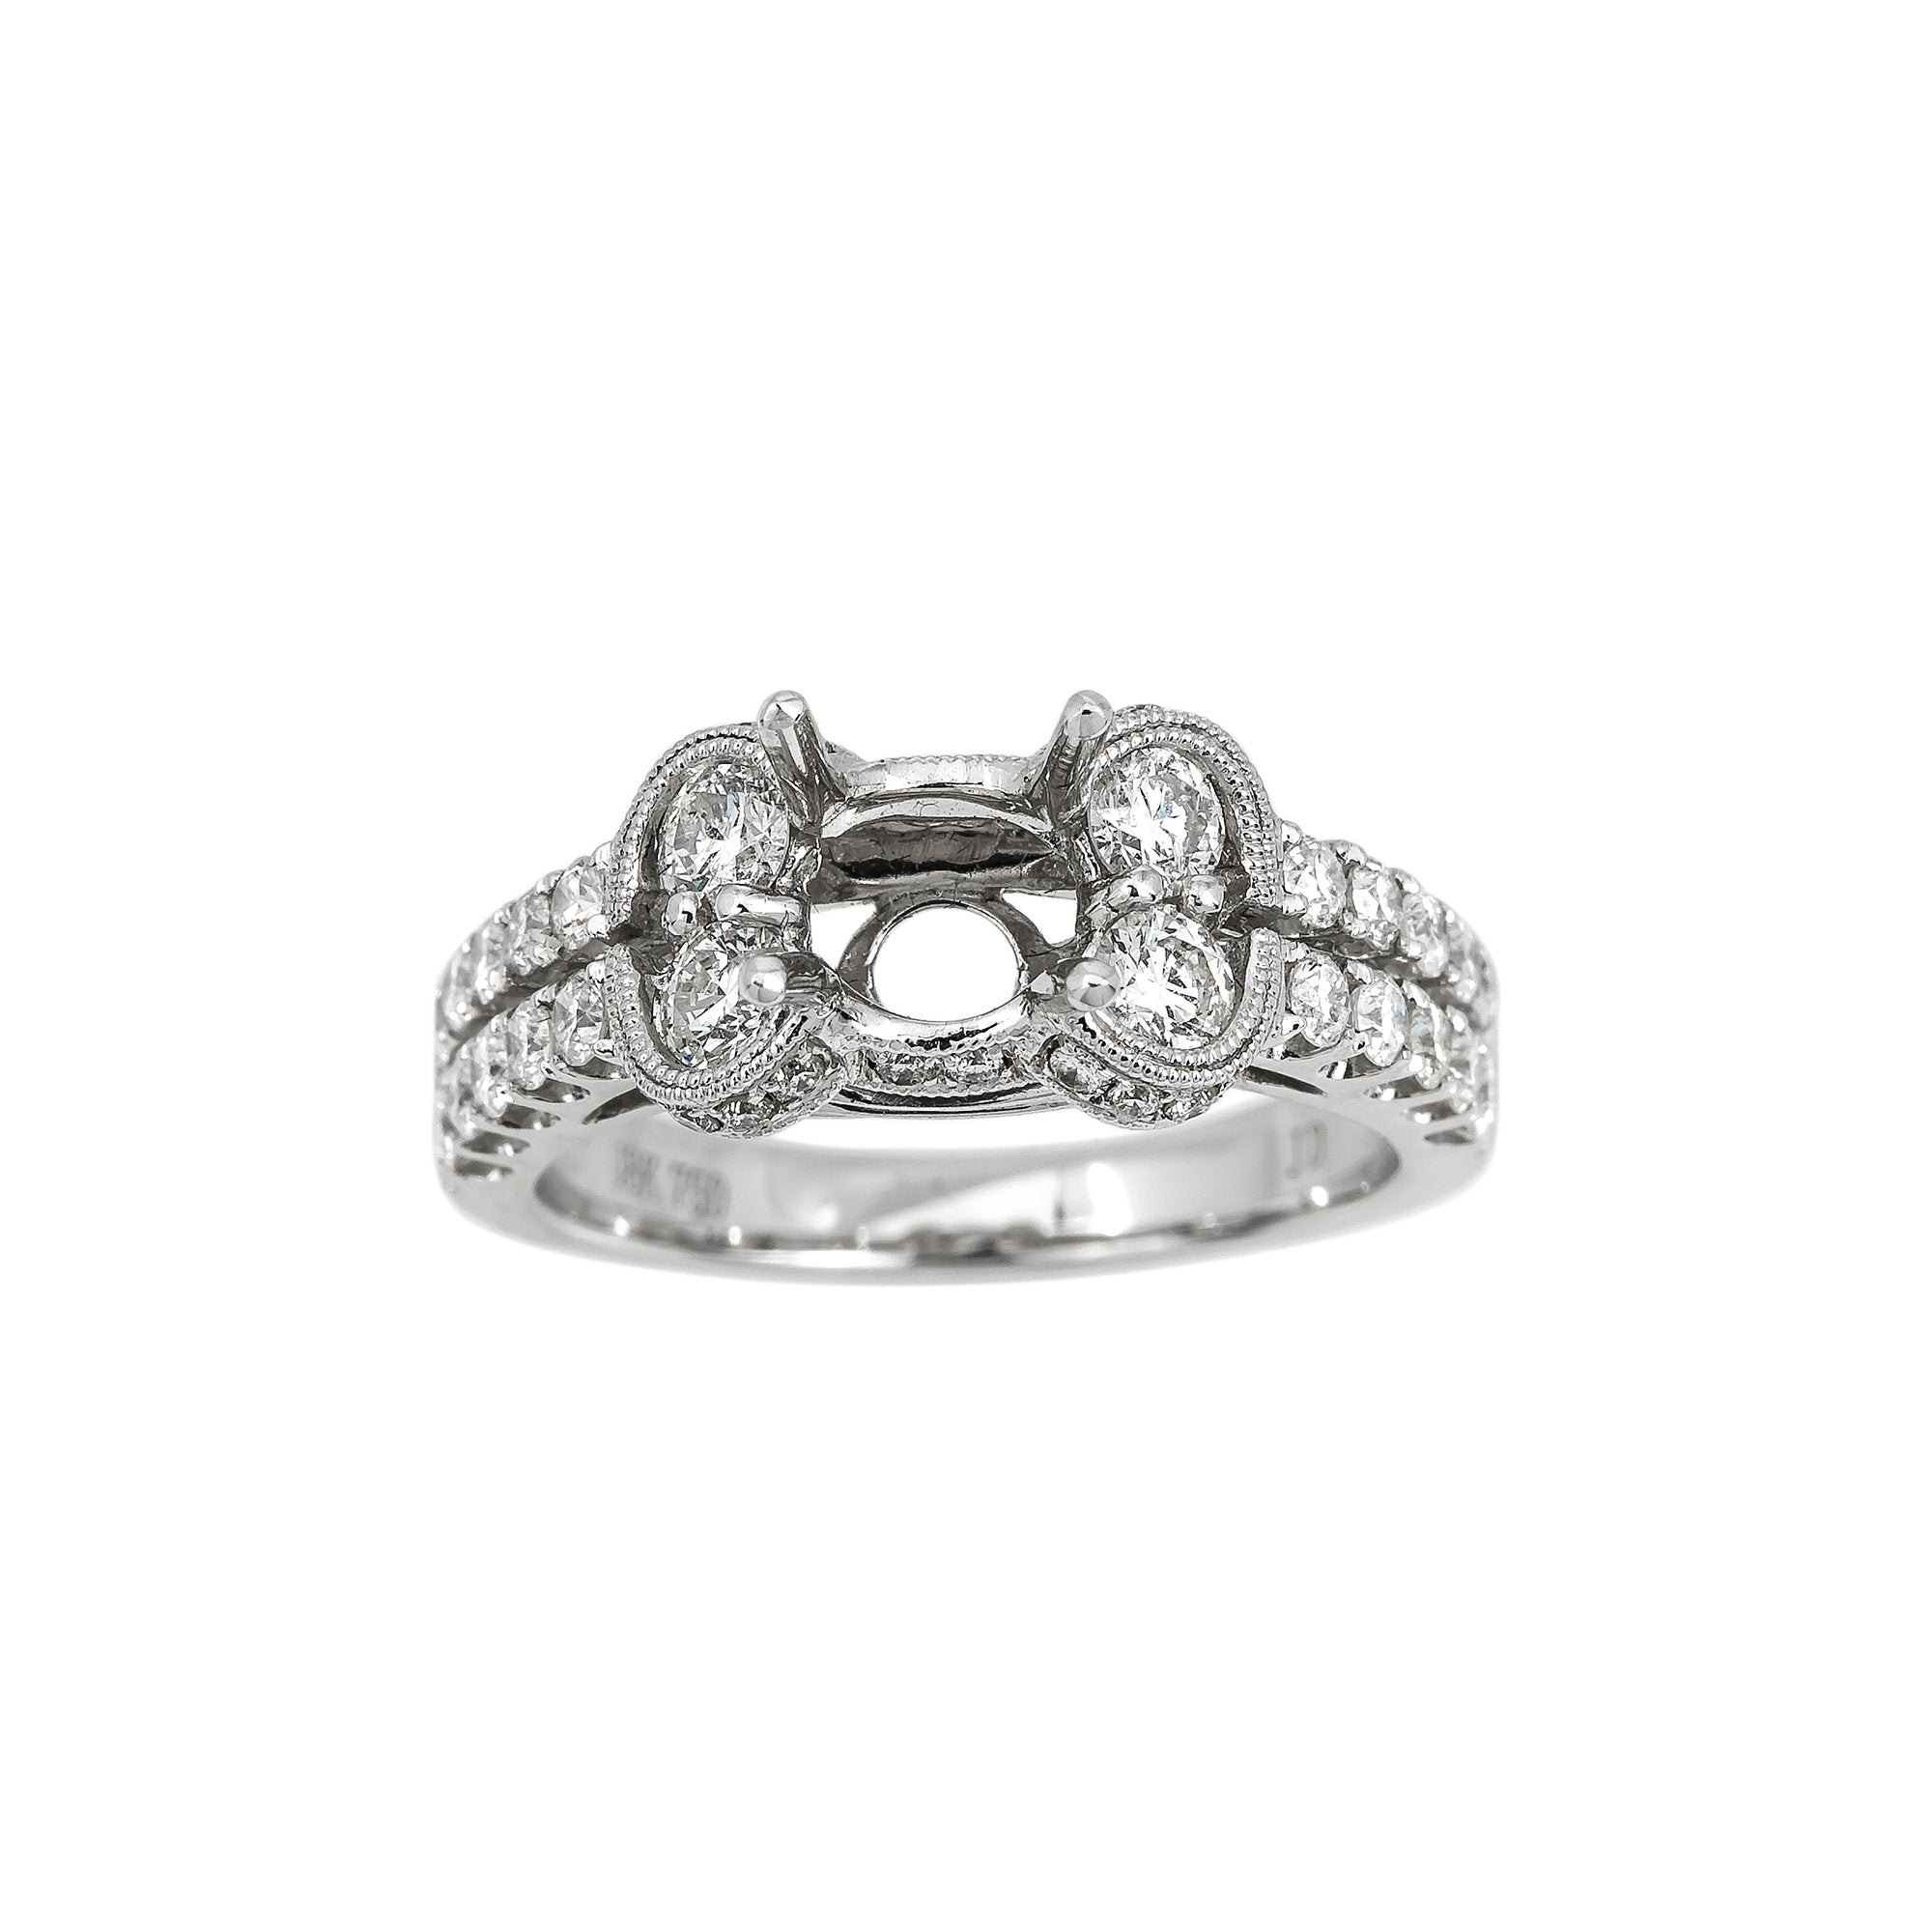 18K White Gold BJ7231R1 Women's Ring With 1.30 CT Diamonds